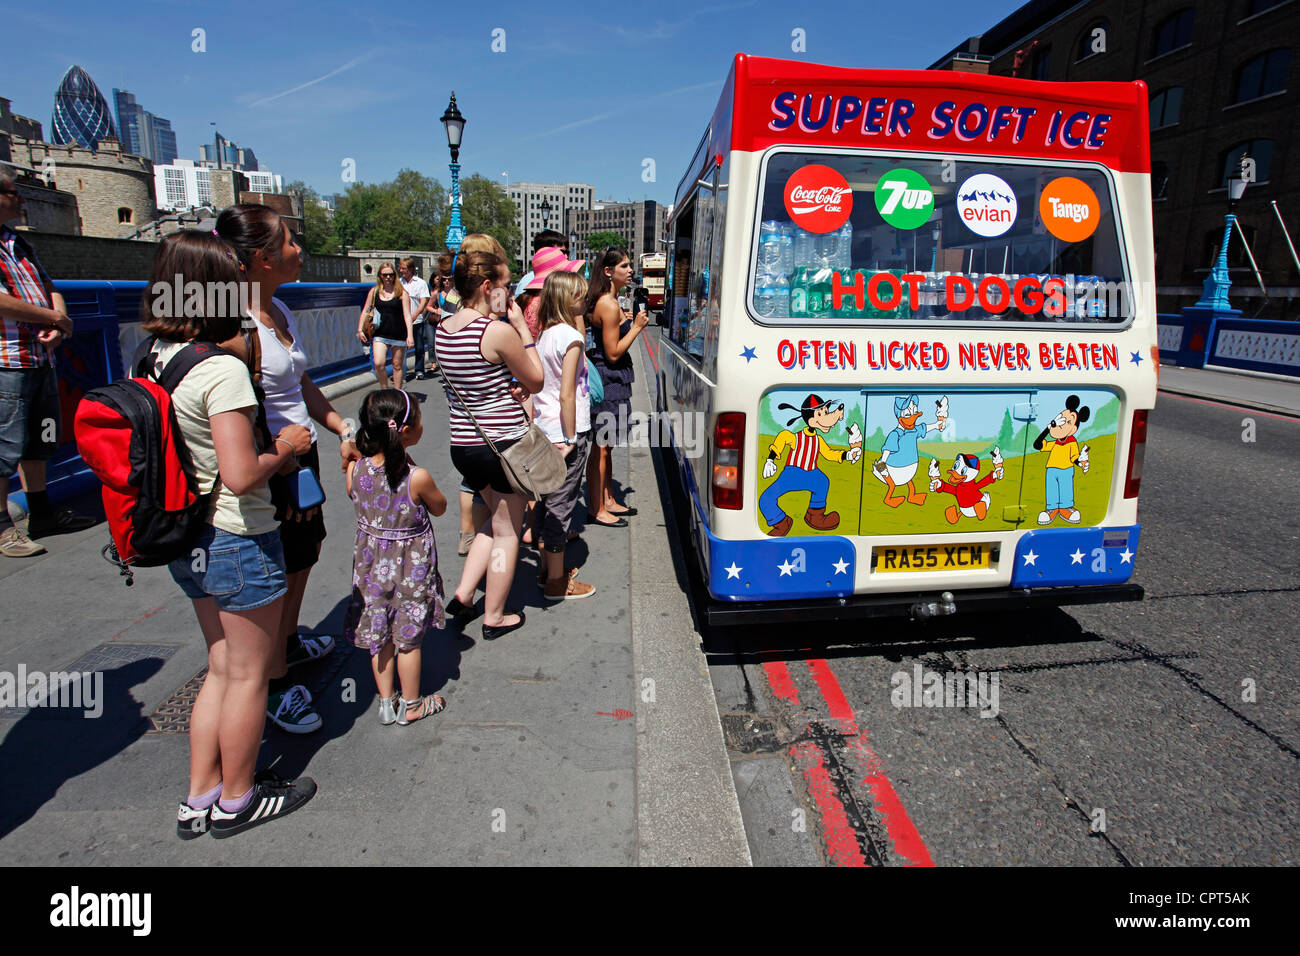 Selling ice creams to a queue of people at an Ice Cream Van, London, England - Stock Image